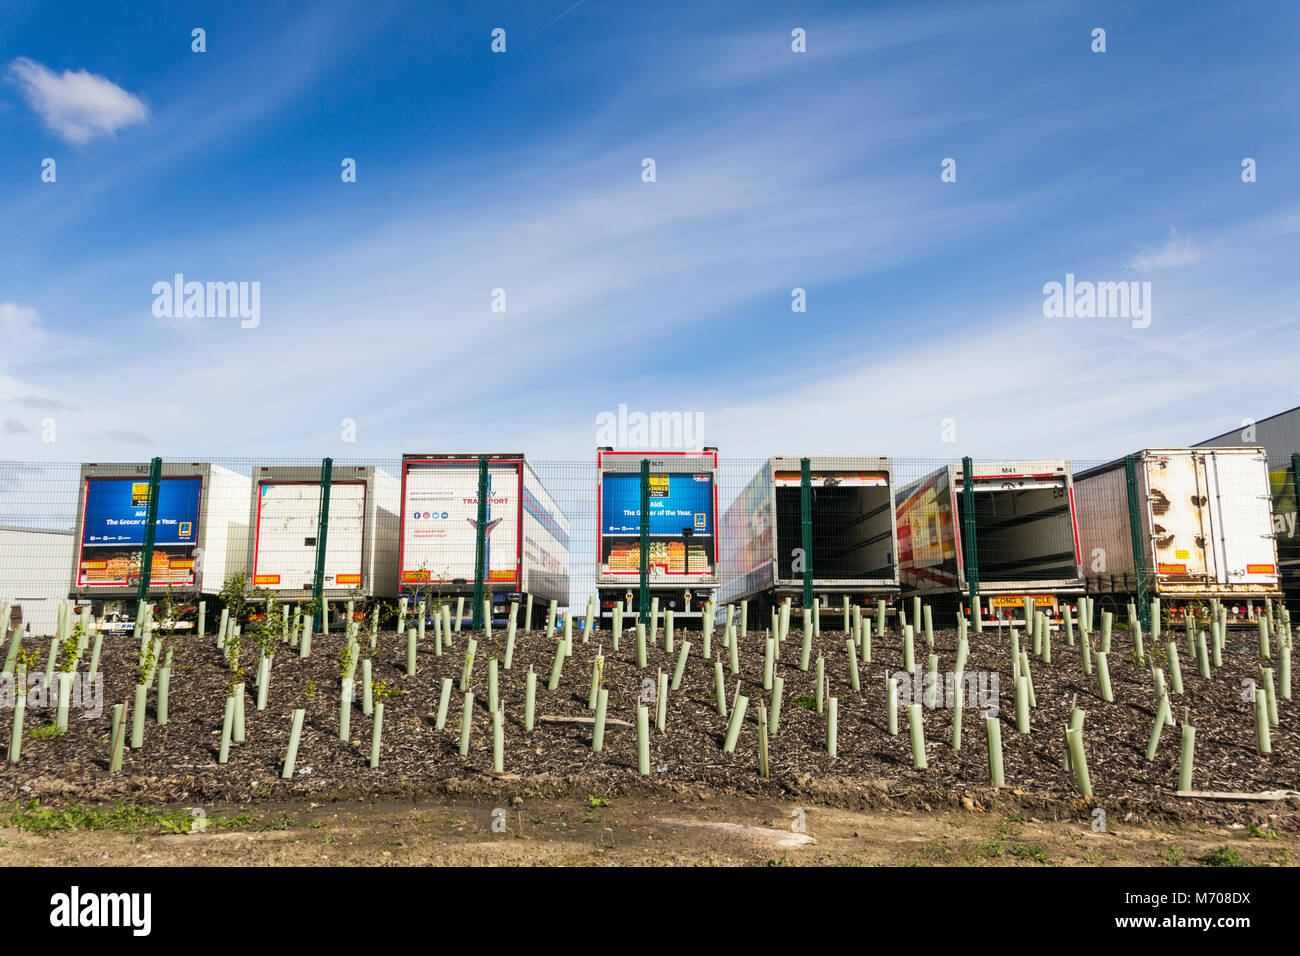 Aldi branded articulated lorry trailers outside the new Aldi Distribution warehouse at Logistics North, Over Hulton, - Stock Image